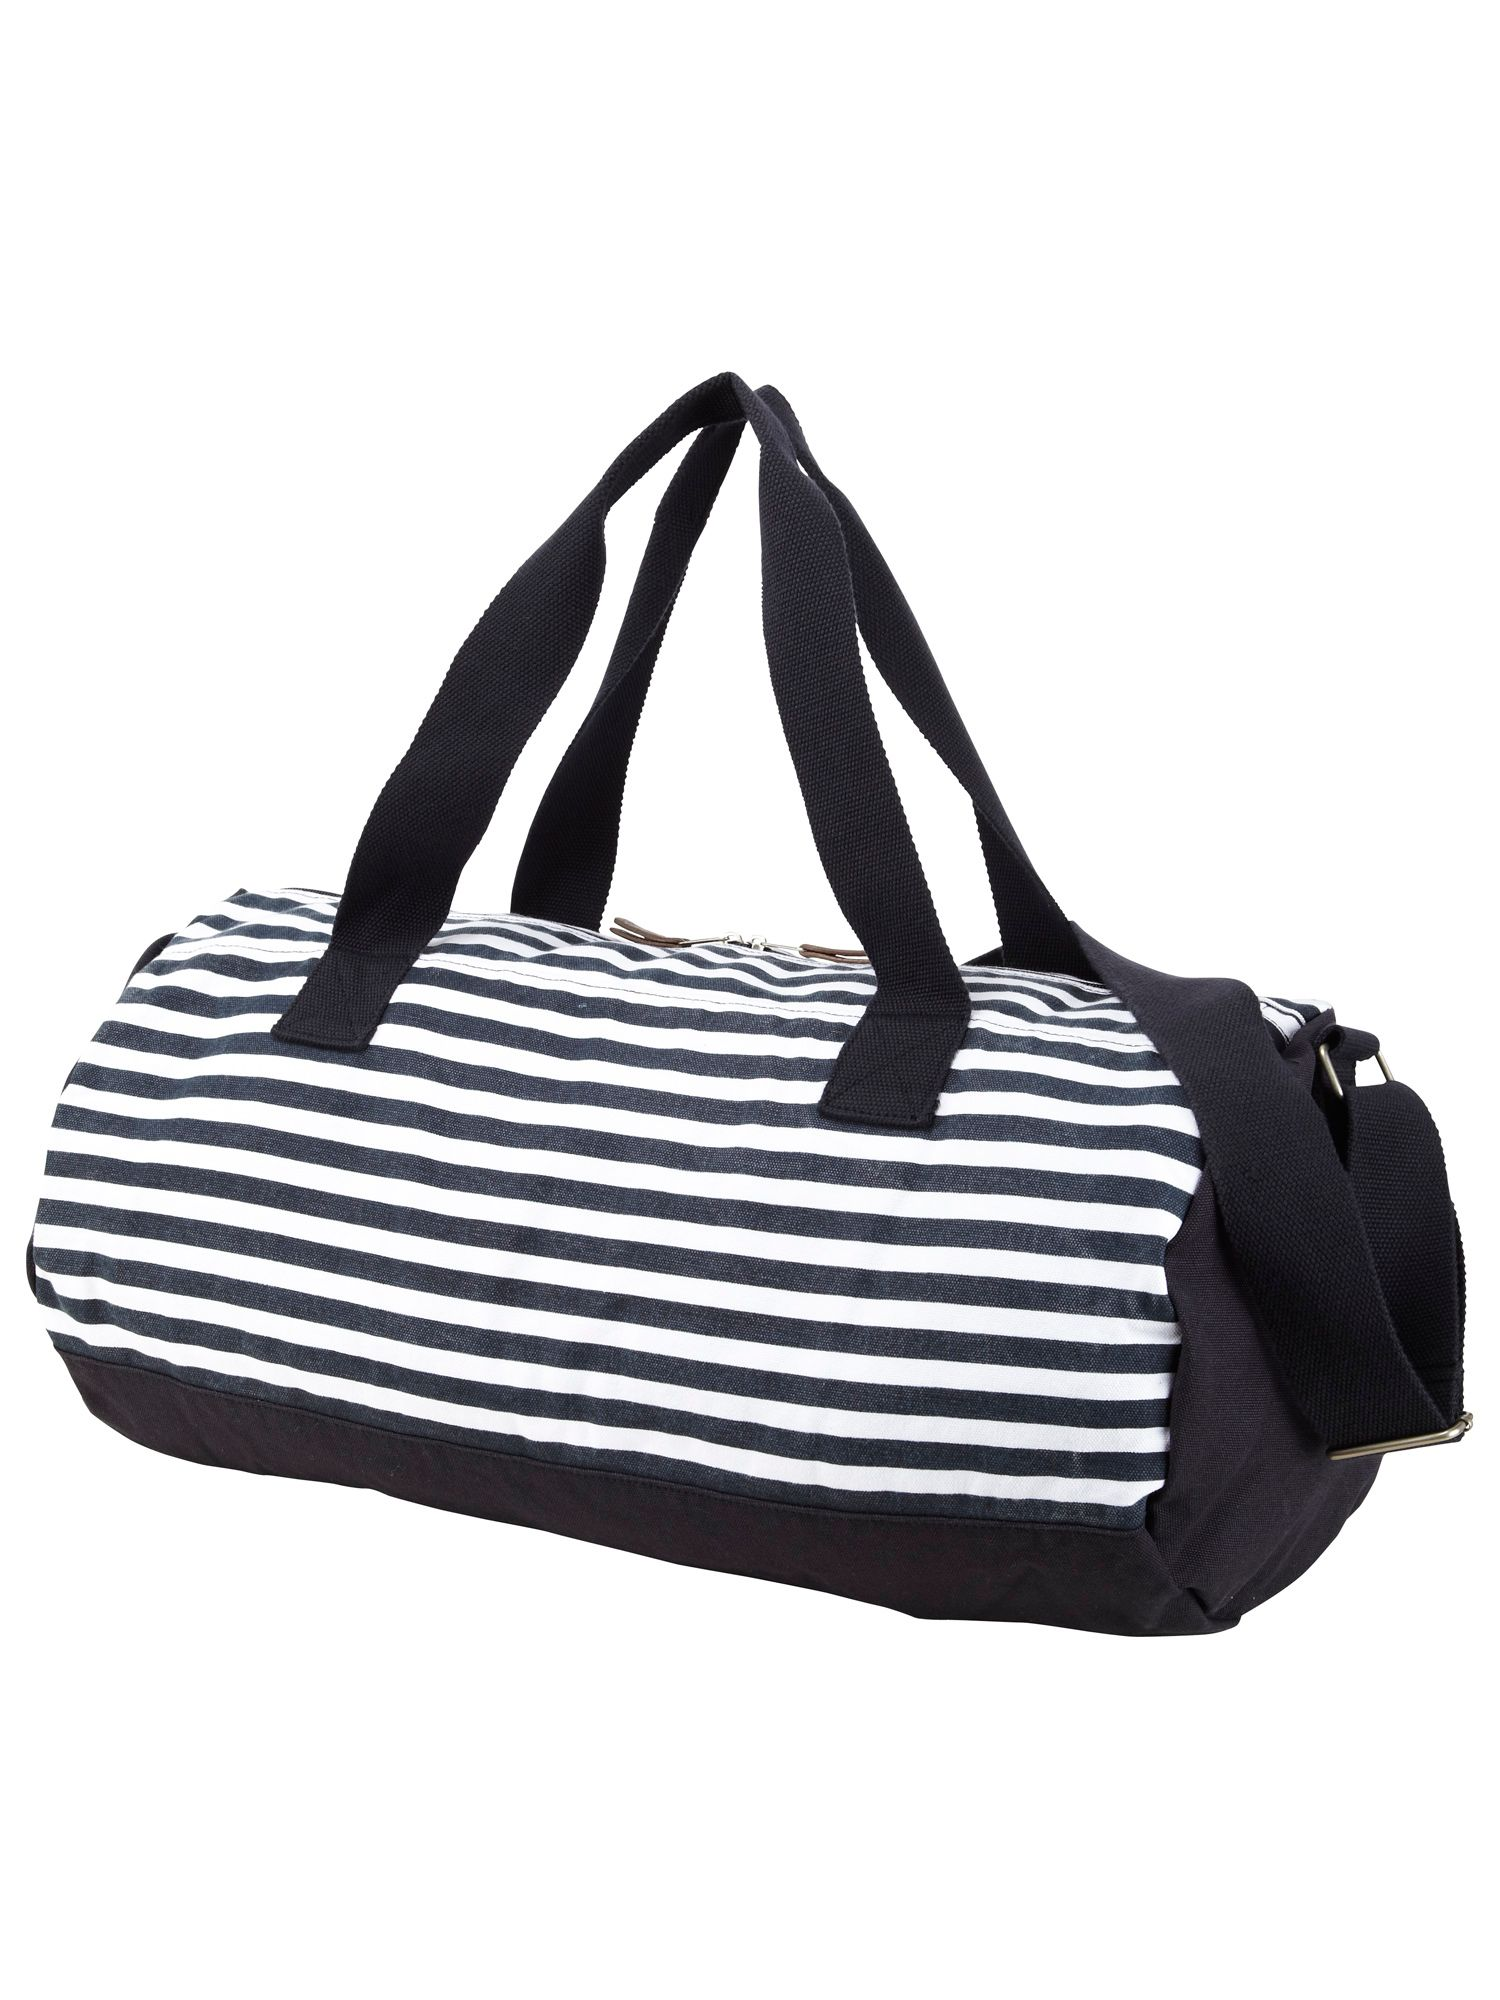 Sanford gym bag